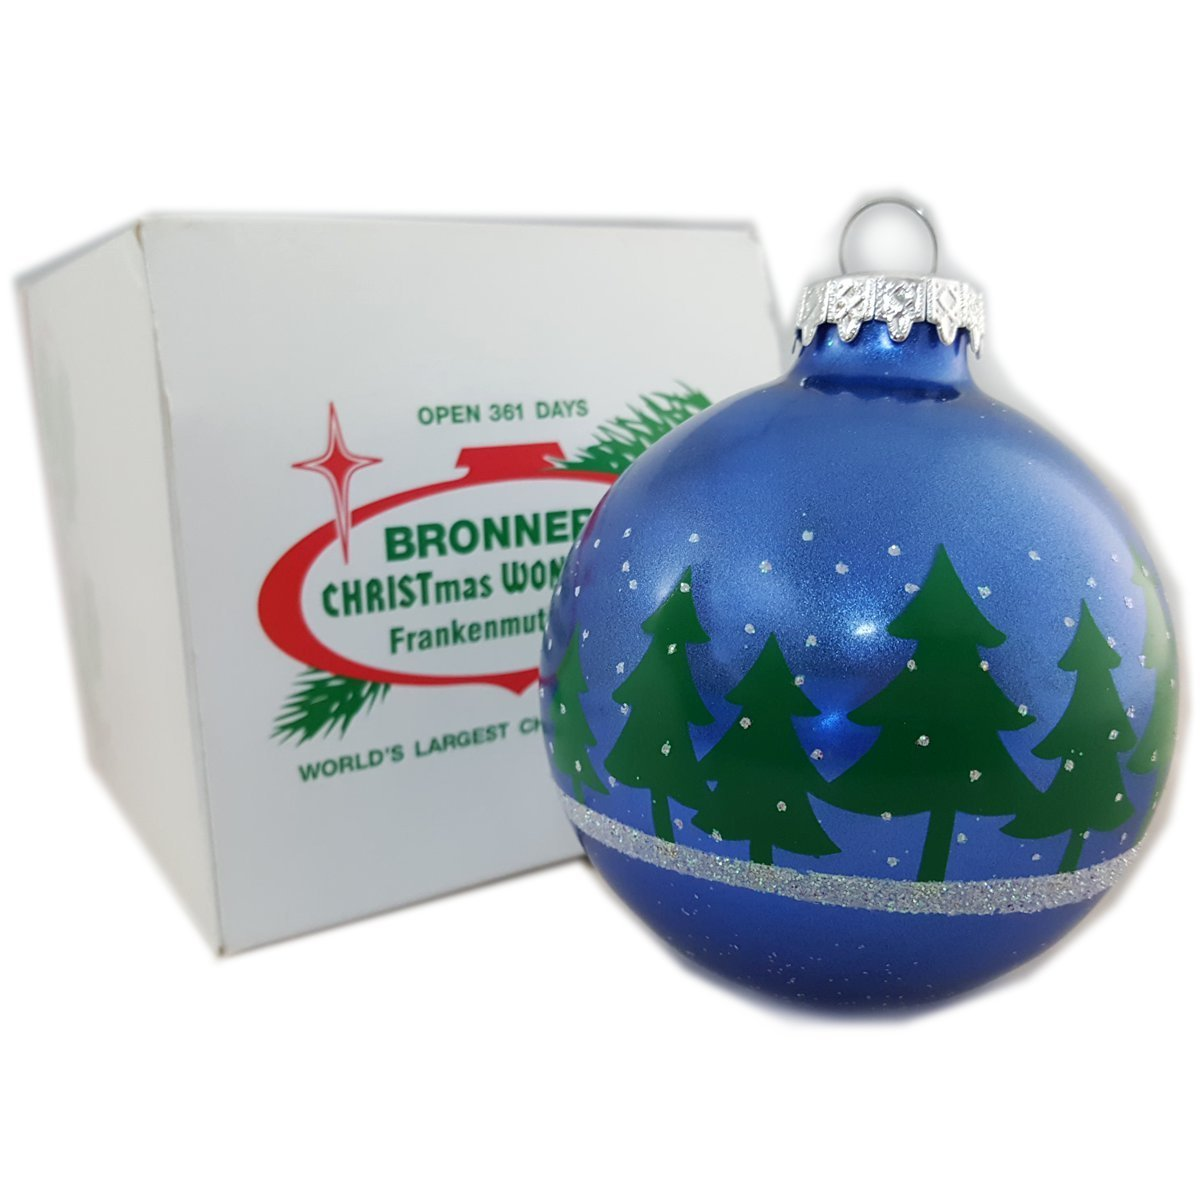 bronners christmas wonderland blue glass ball ornament with christmas trees